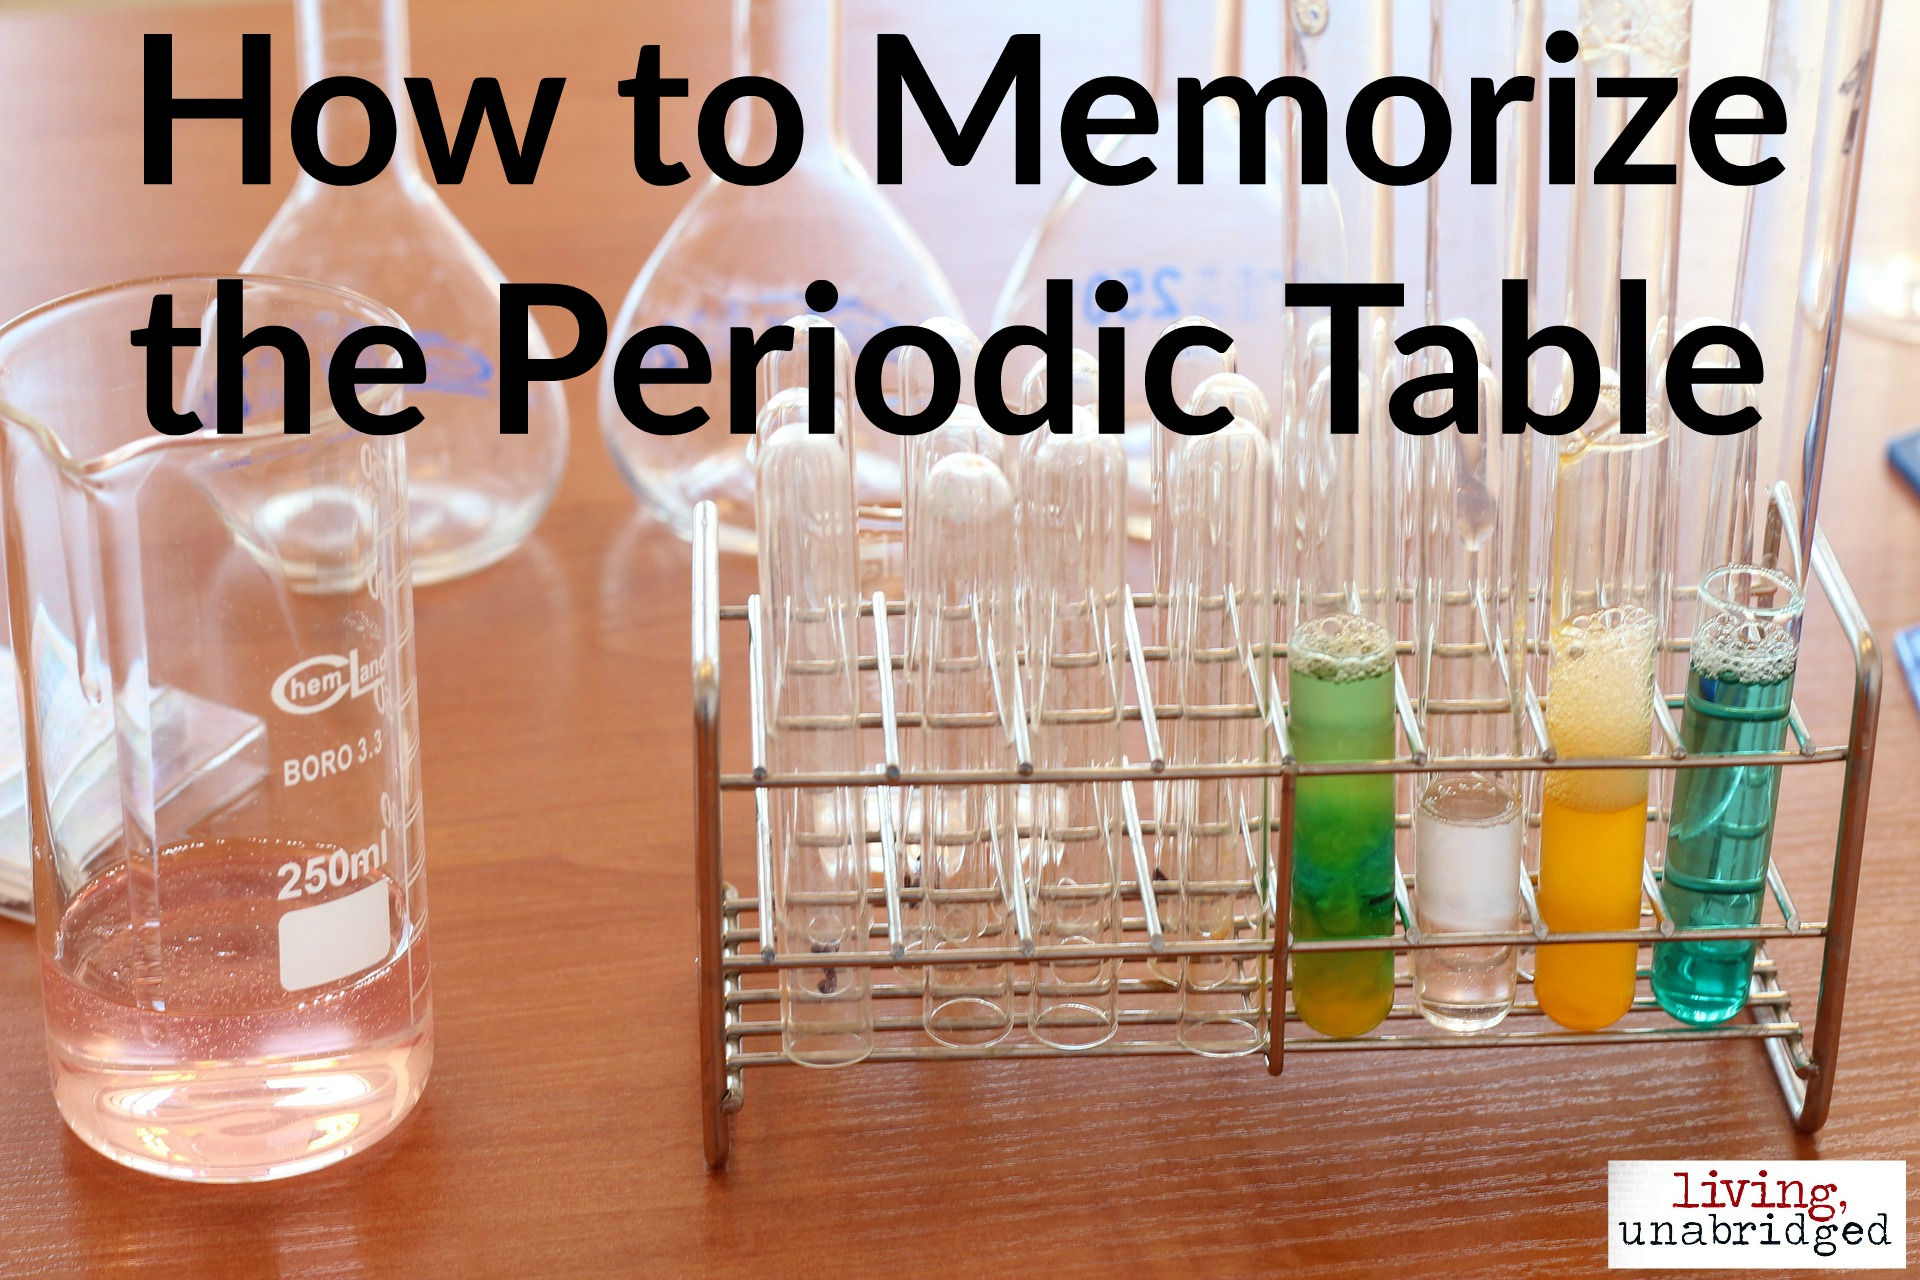 How to memorize the periodic table living unabridged gamestrikefo Gallery